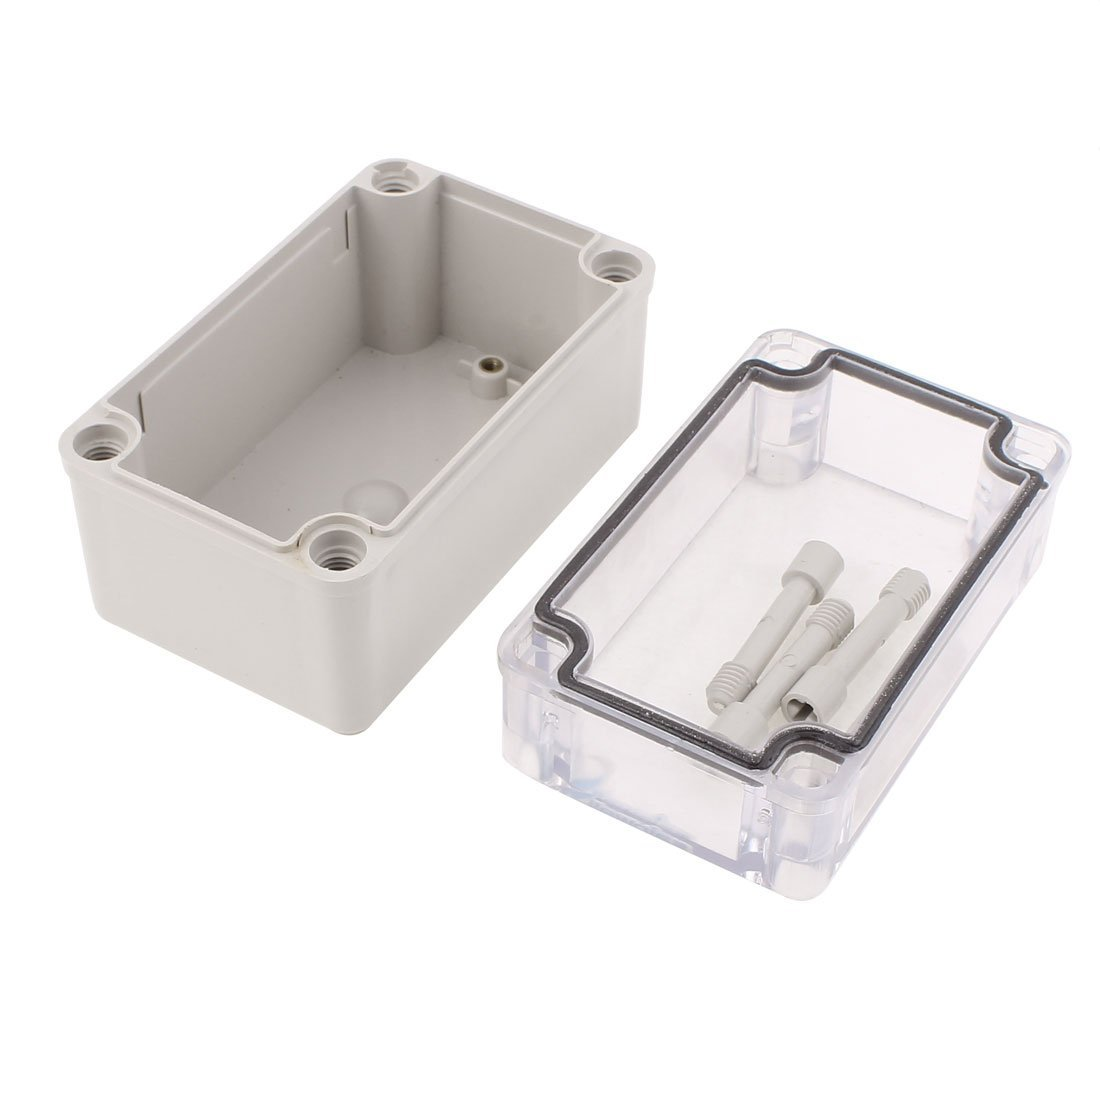 Amazon.com: eDealMax 130 x 80 x 85 mm cubierta transparente impermeable Box Junction Terminal Box Enclosure: Electronics